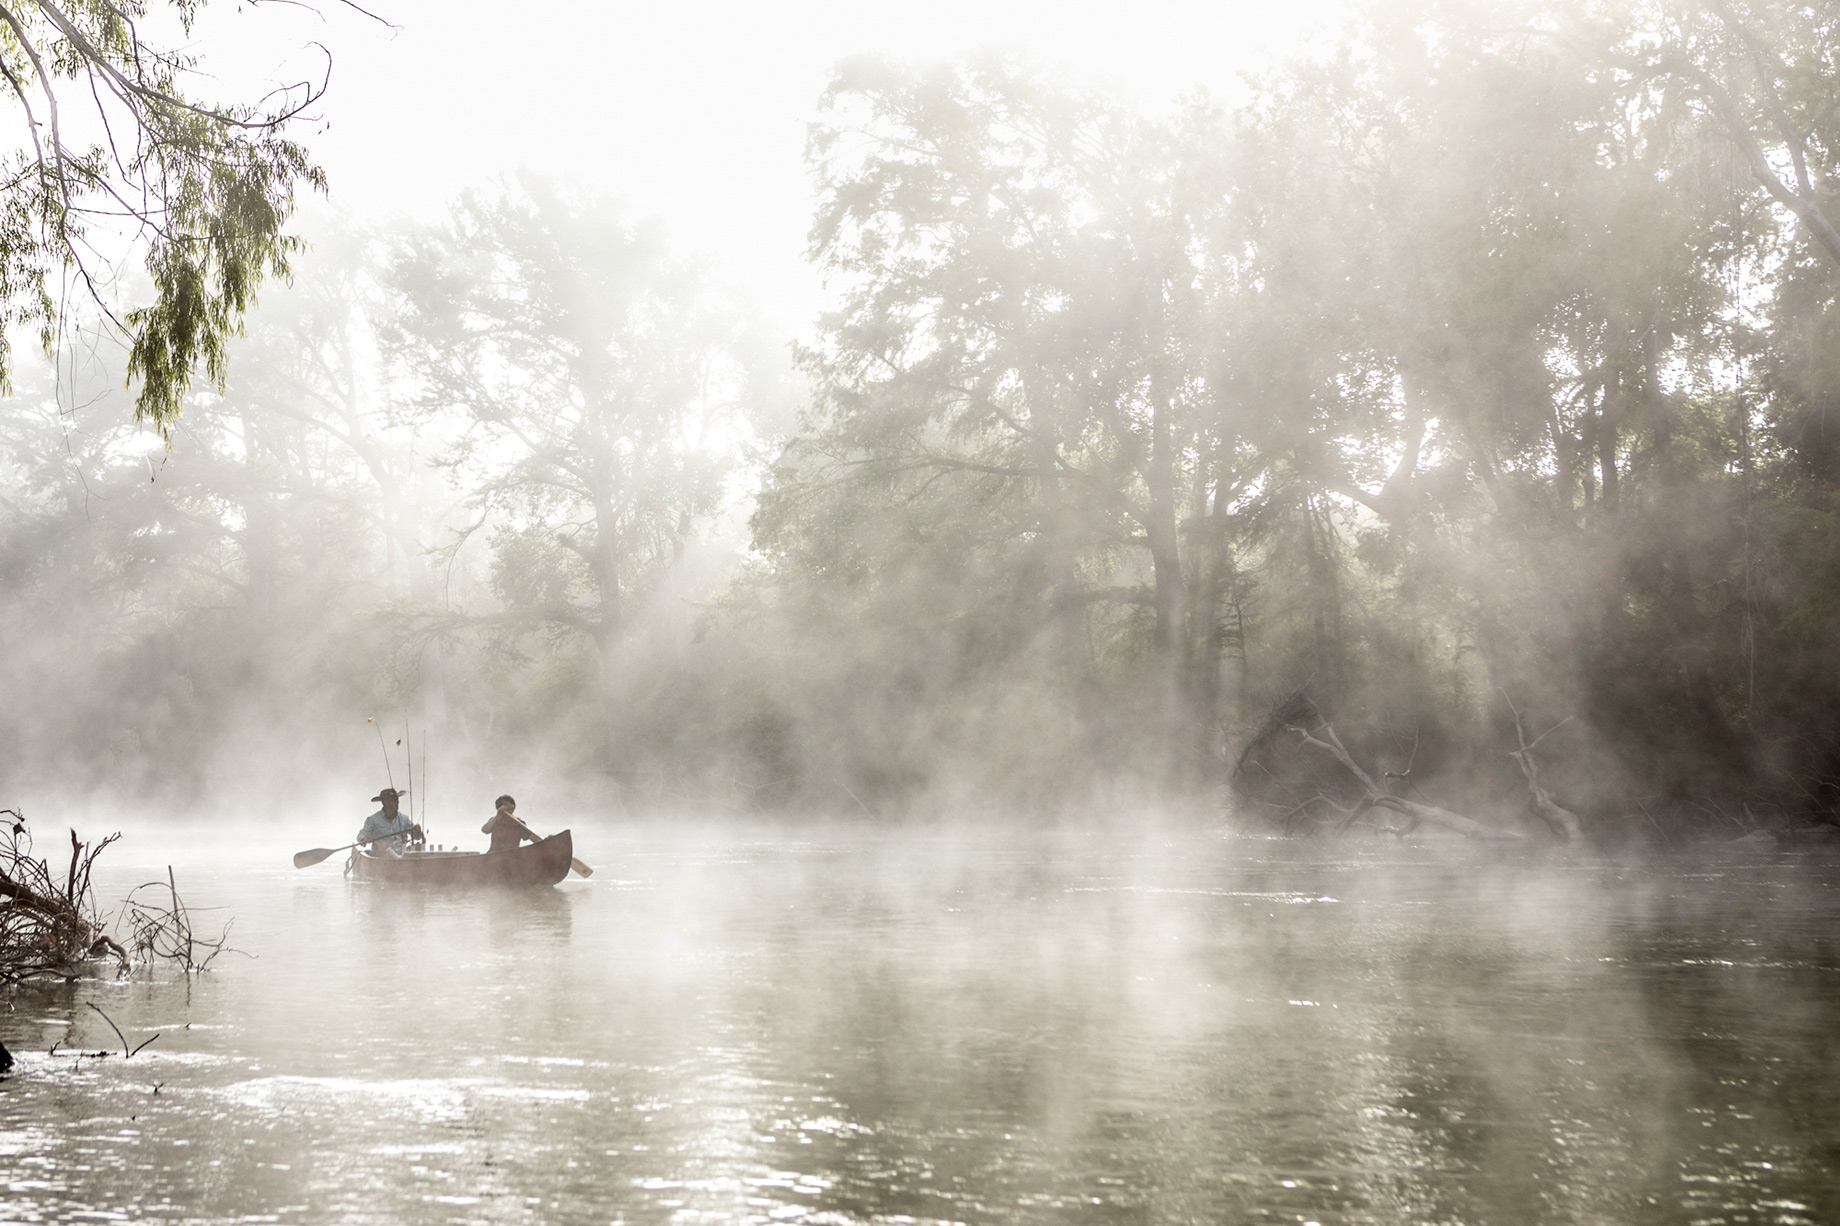 Guadalupe River Canoe Trip